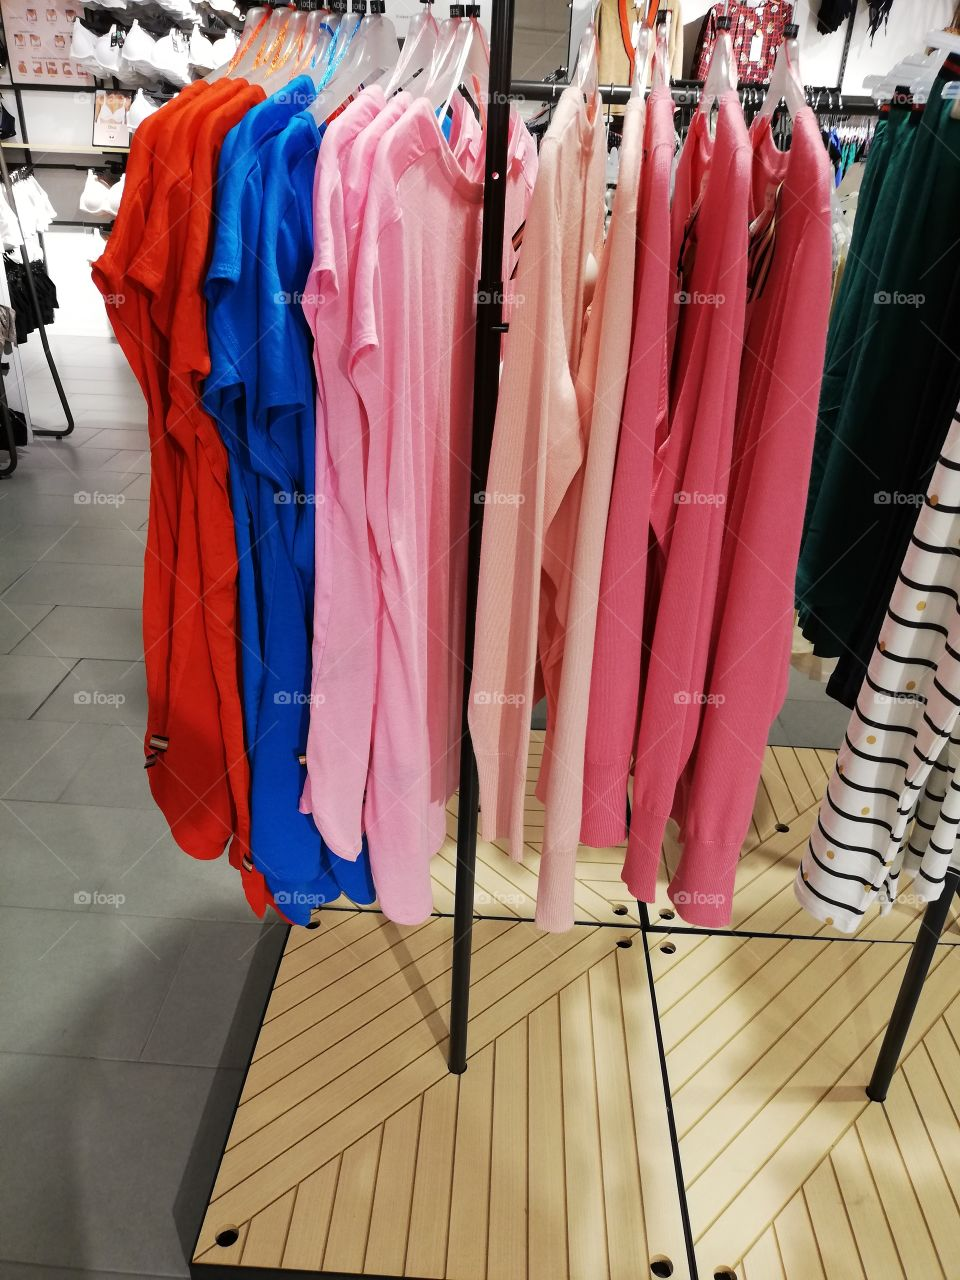 Plenty of different colors nightdresses and striped pants are hanging on the hangers on the rack, sizes are seen above the clothes. In the background white bras are shown in the bright light.